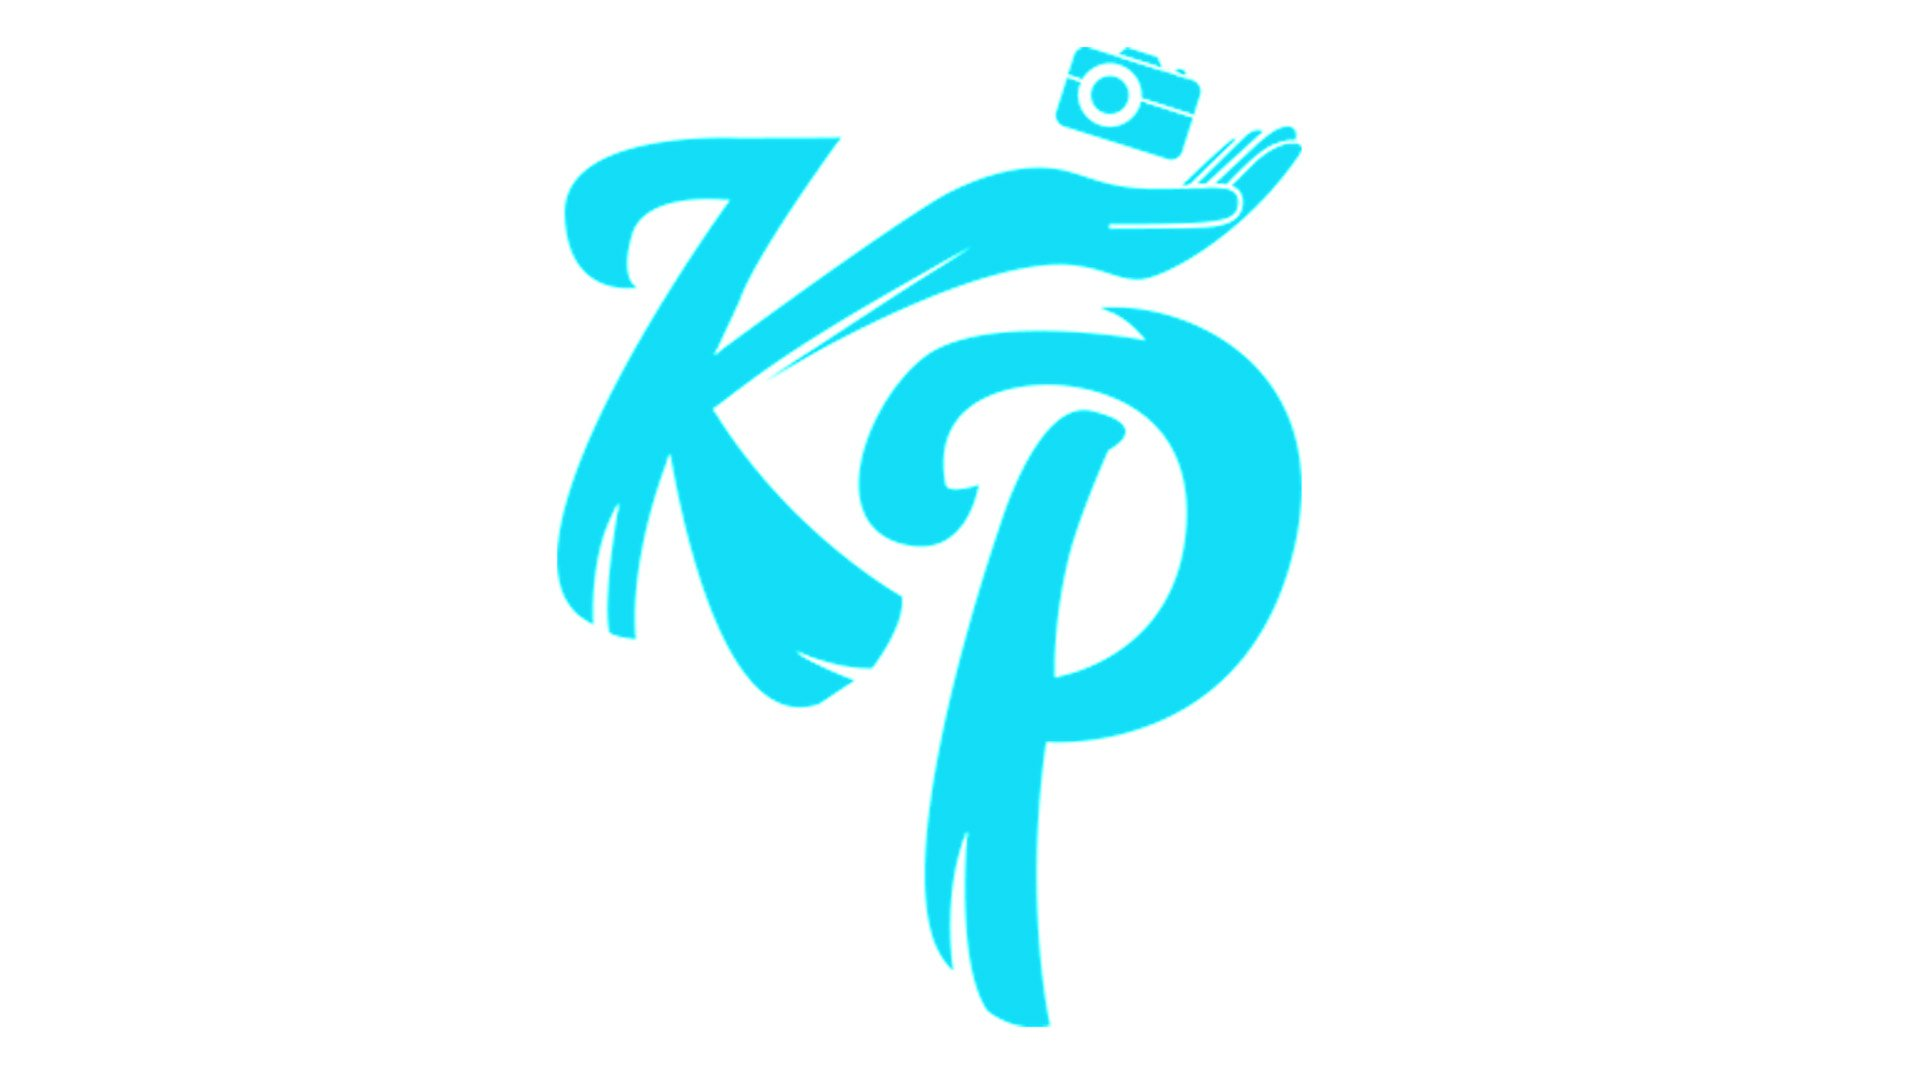 knolpower logo and symbol meaning history png